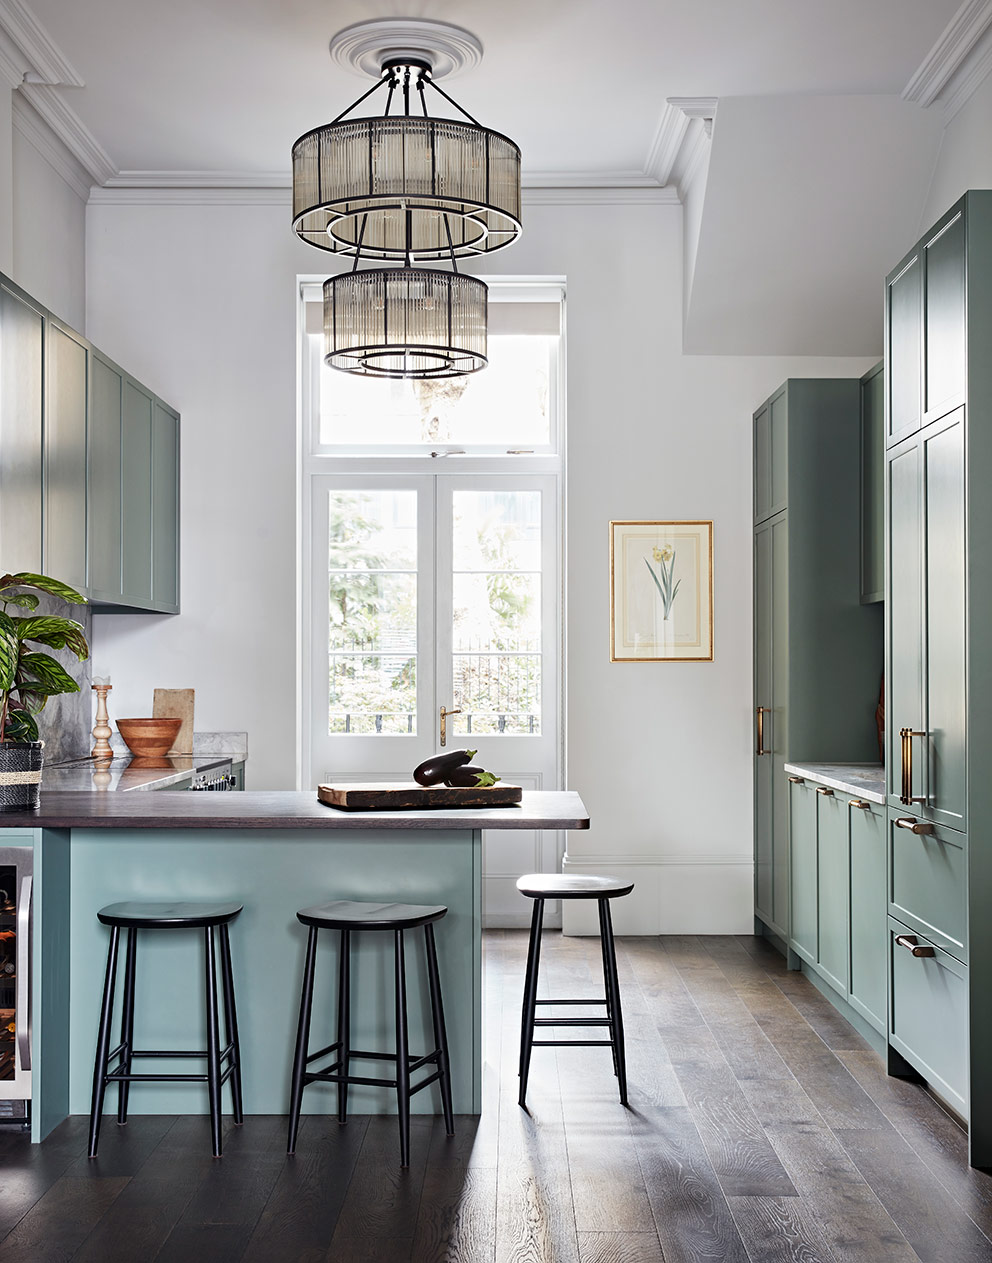 Bespoke kitchen with high ceilings and unusual chandelier